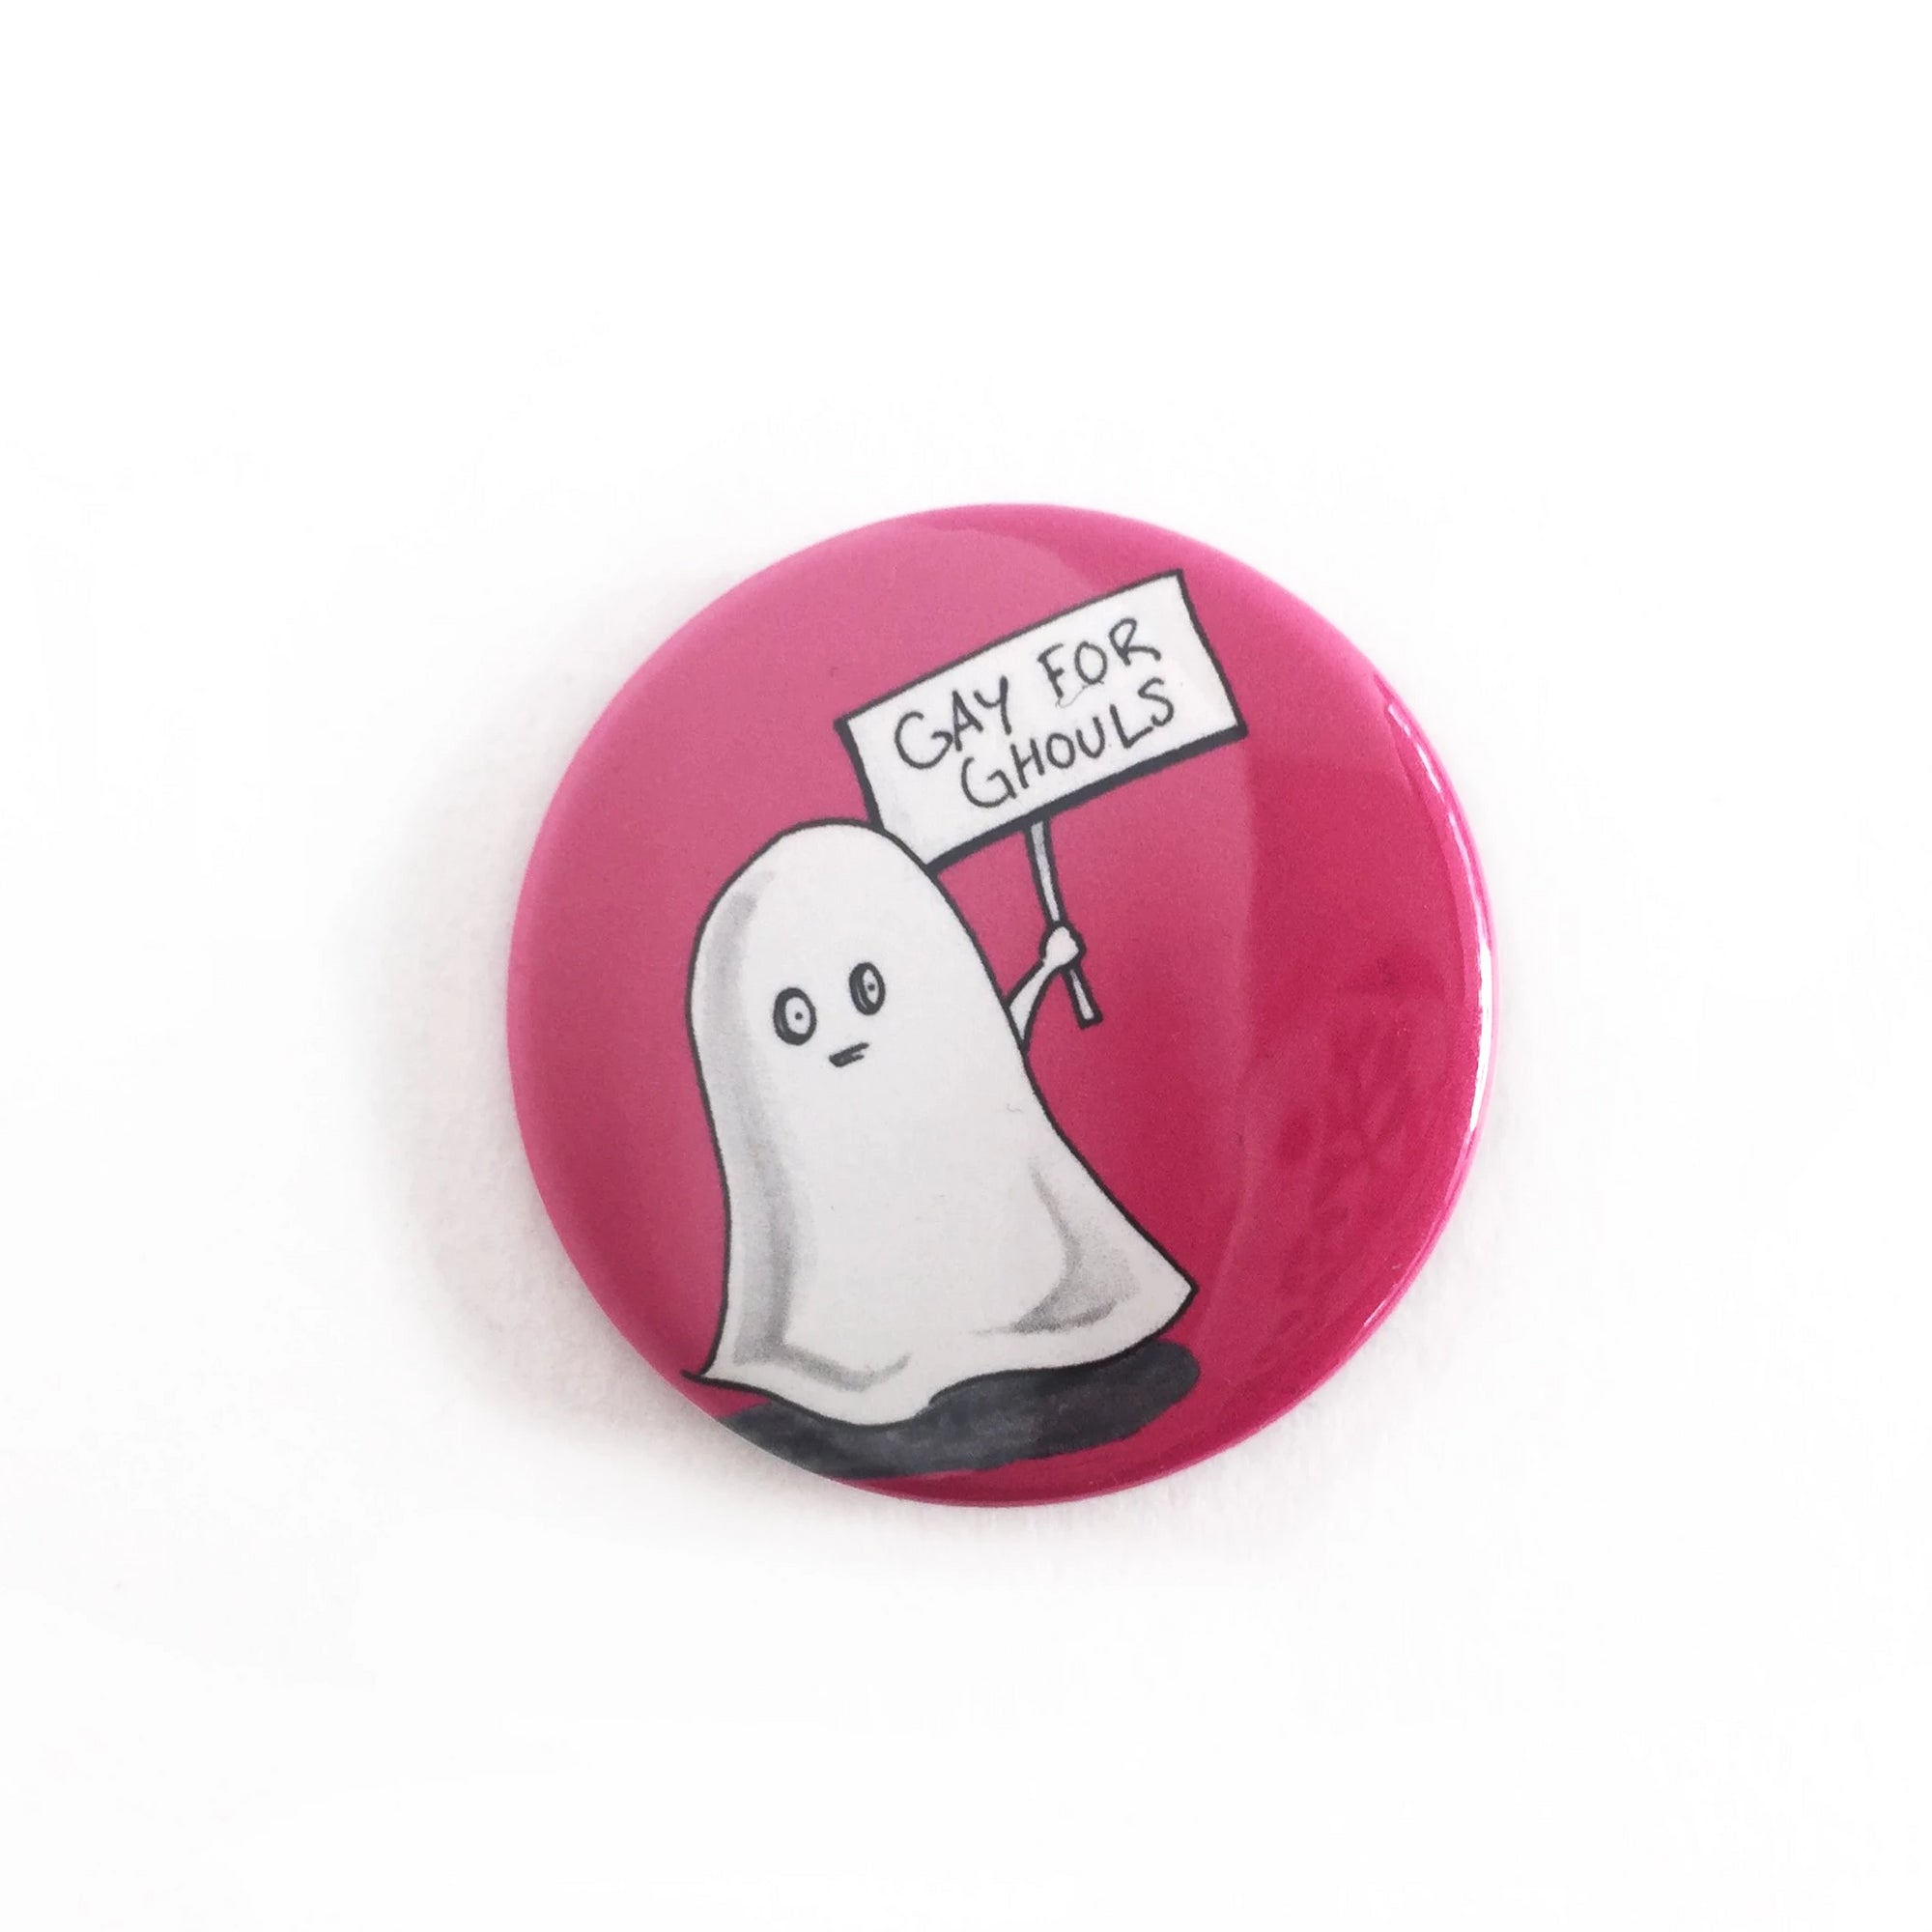 Gay for Ghouls Button